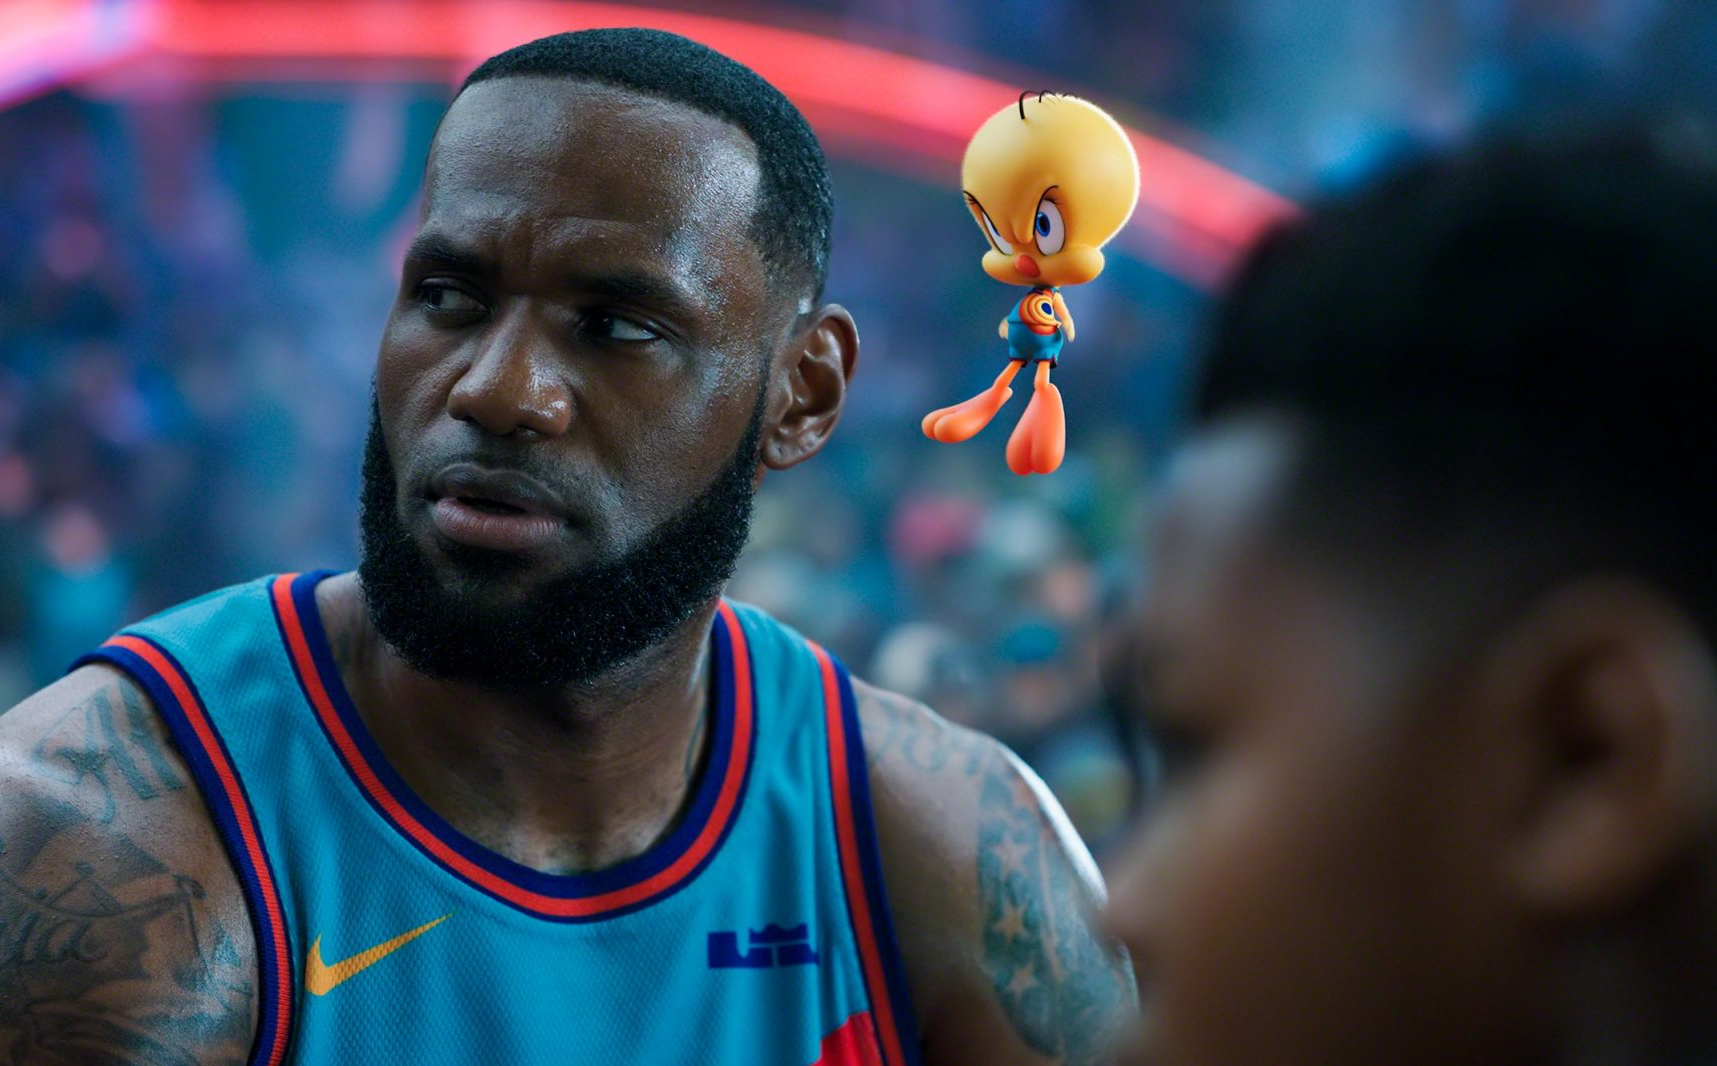 Warner Bros. have released the official trailer for Space Jam: A New Legacy.